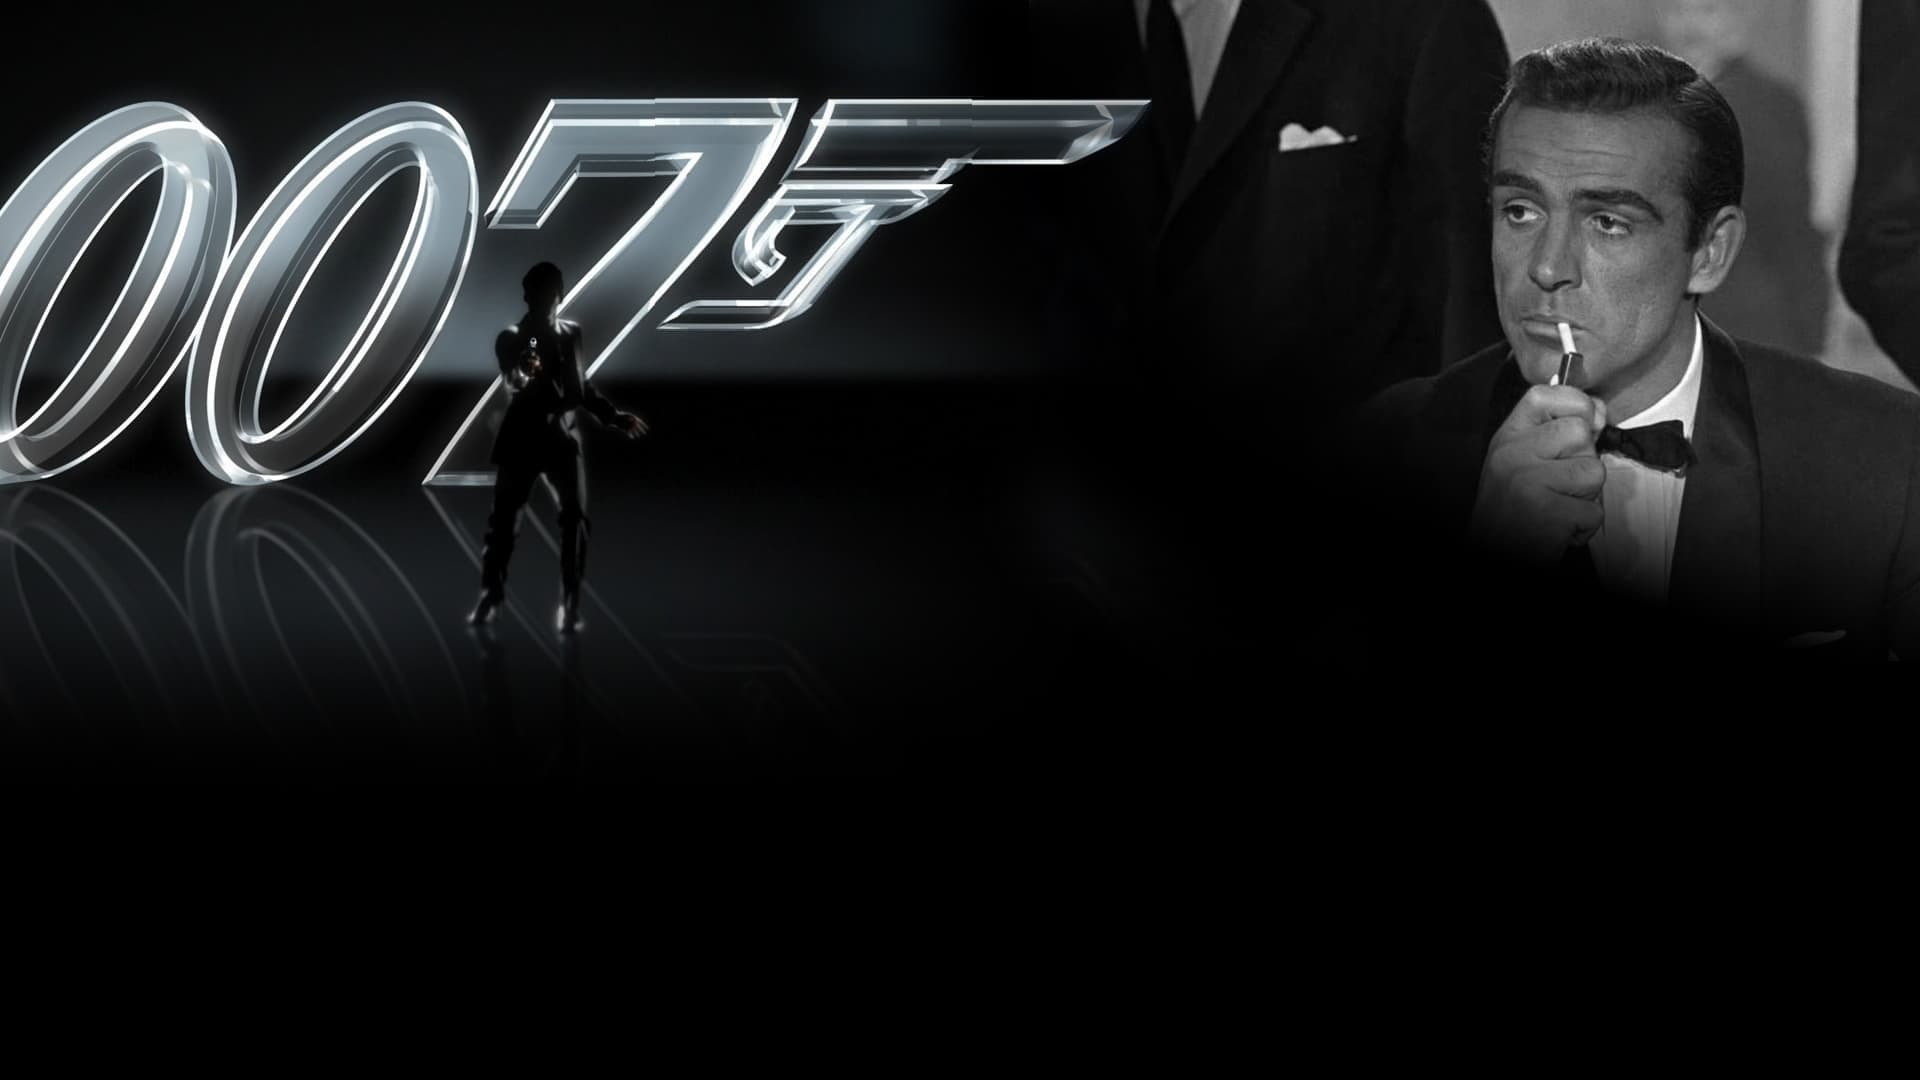 an analysis of james bond as an Bond sees himself as a simple, almost peasant-like, servant to the crown, having been awarded the companion of st michael and st george (cmg) in 1954 after stopping hugo drax from wiping out the nation in moonraker matt spaiser's the suits of james bond also has a nice analysis of the jacket.